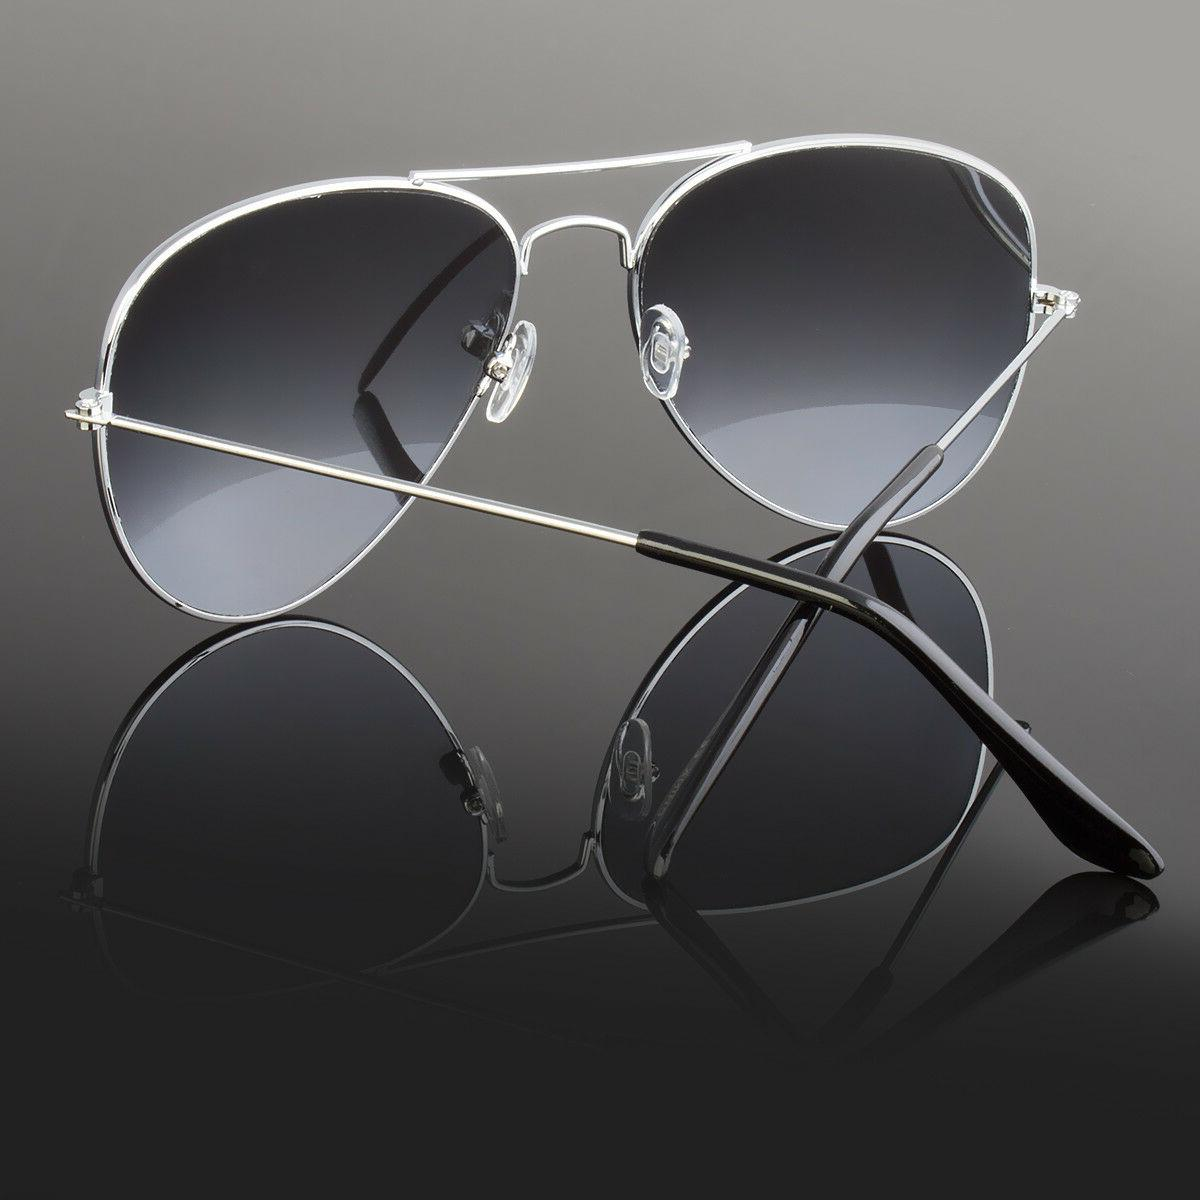 Aviator Sunglasses Vintage Mirror Lens Fashion Retro